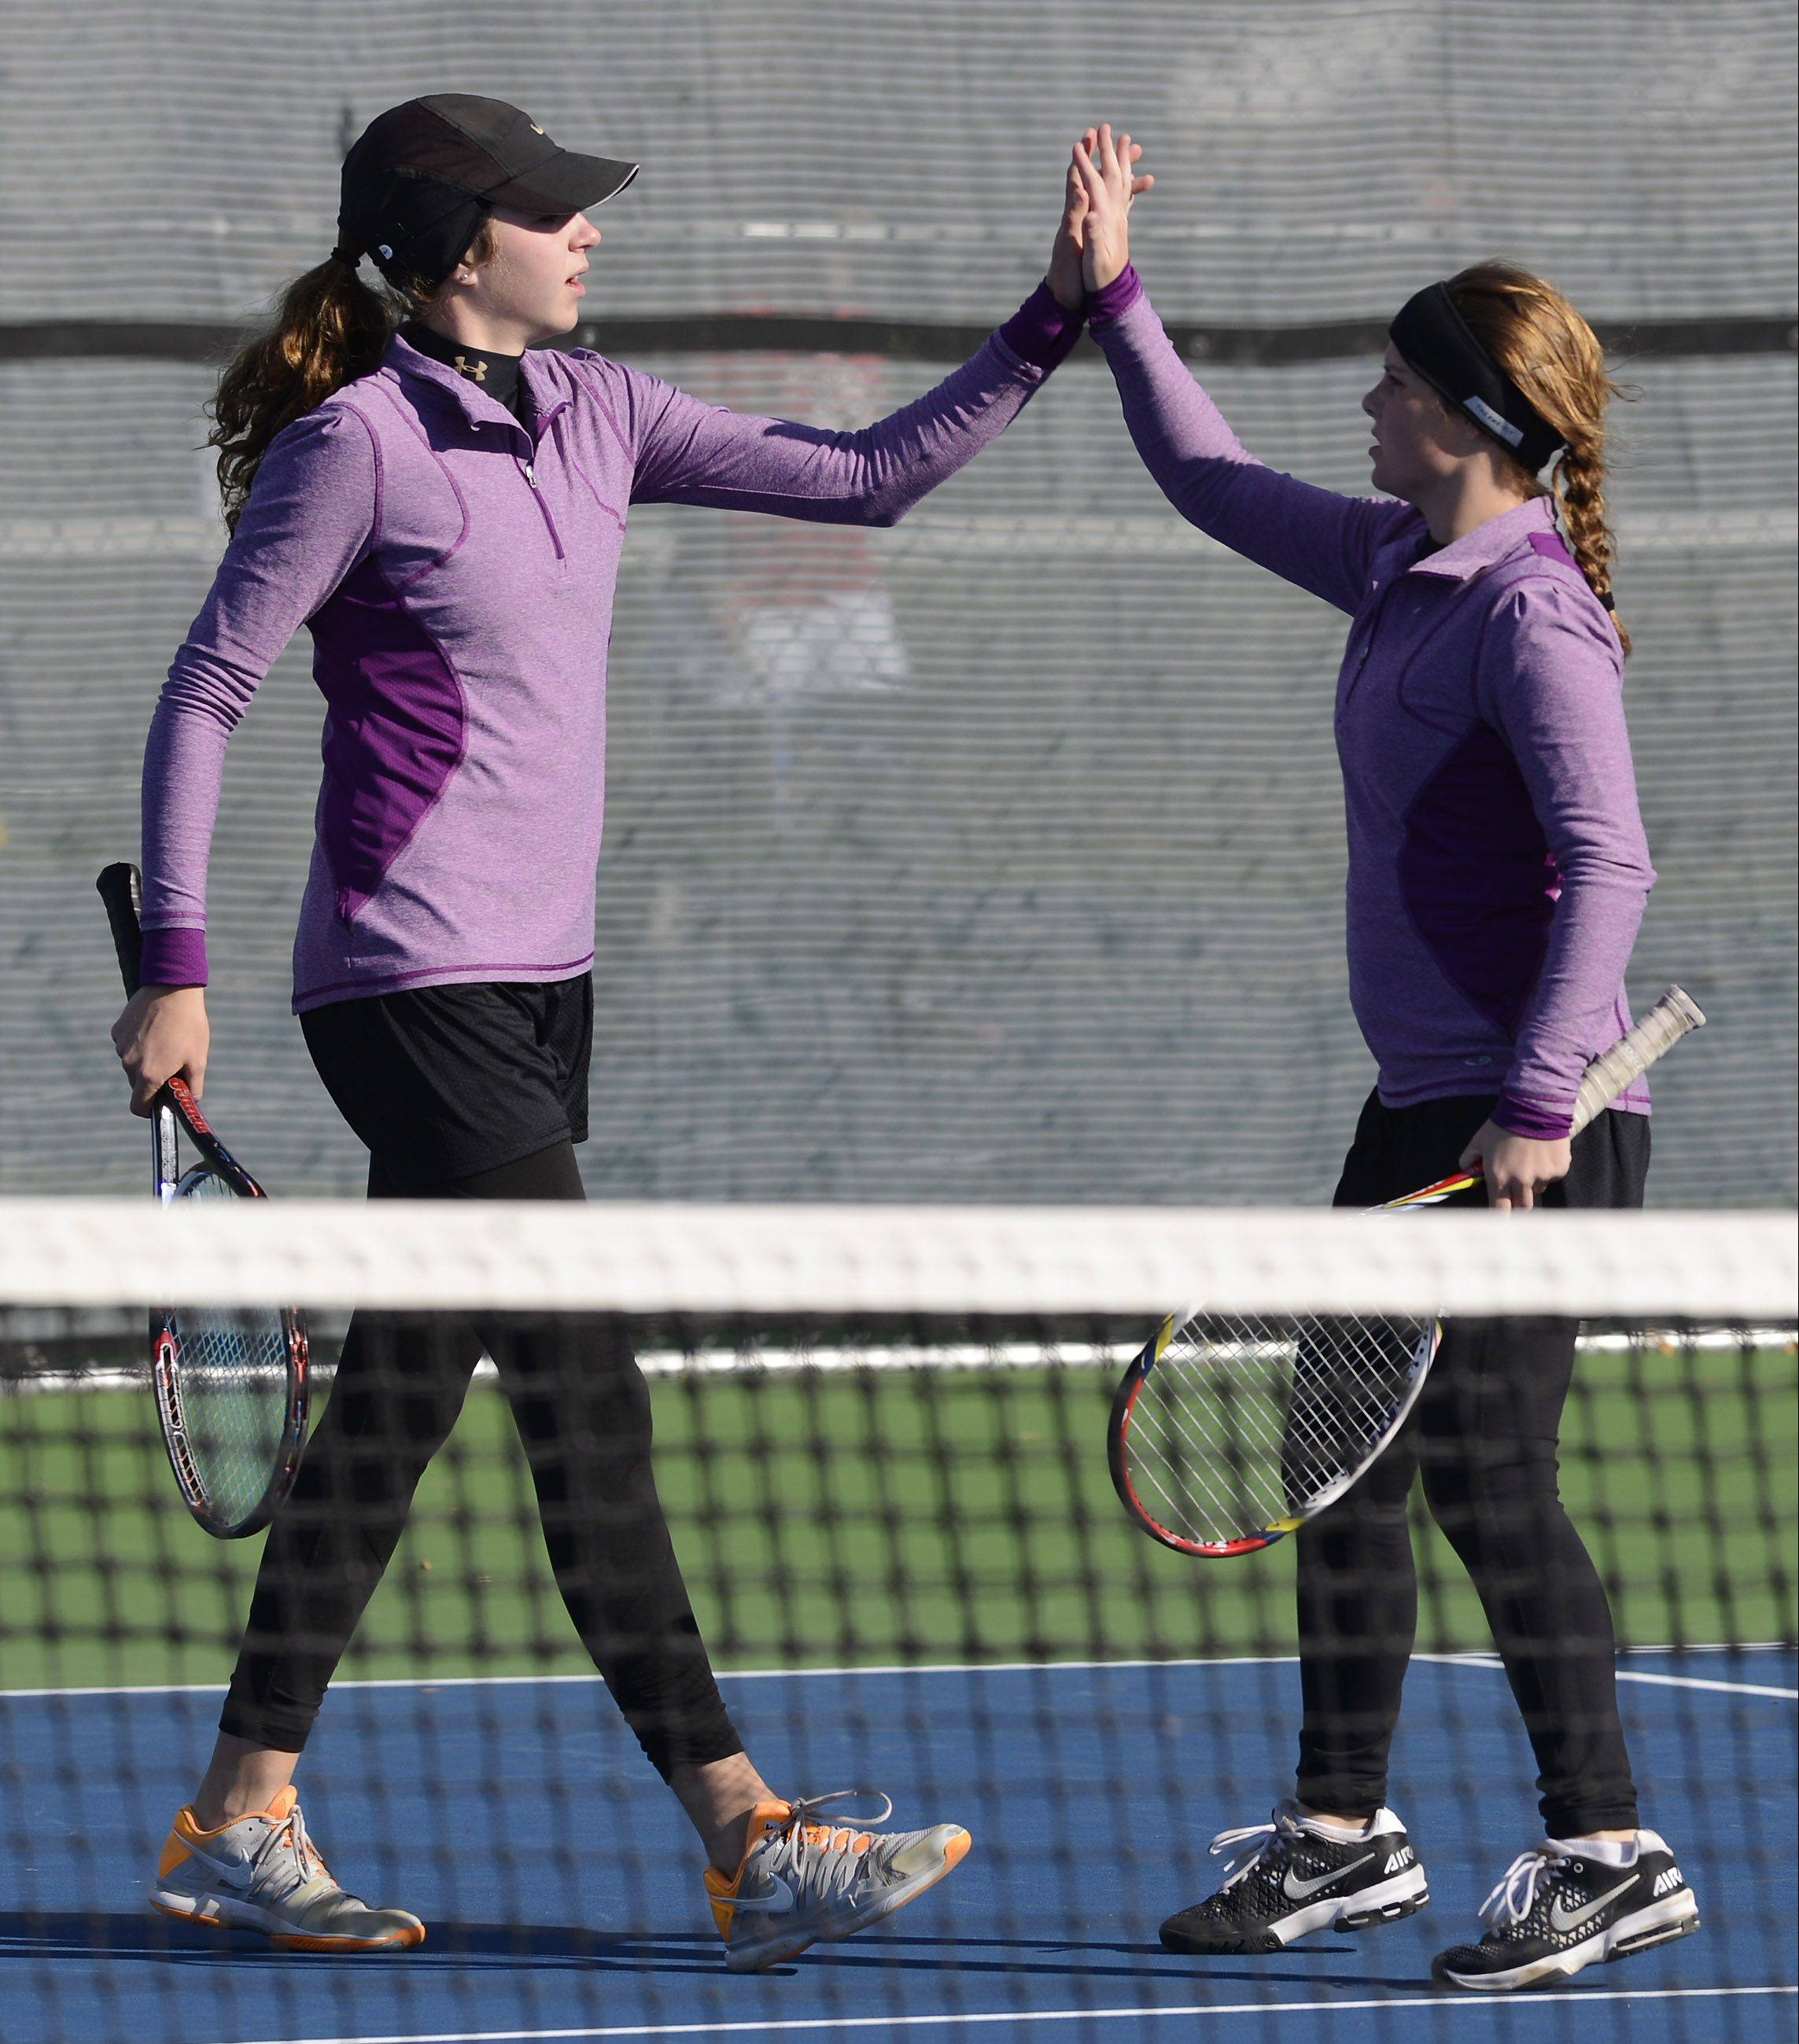 Batavia doubles players Brooke Lefevre, left, and Sydnee Unterberg high-five after a point against Libertyville during the state tennis preliminaries at Prospect Thursday.